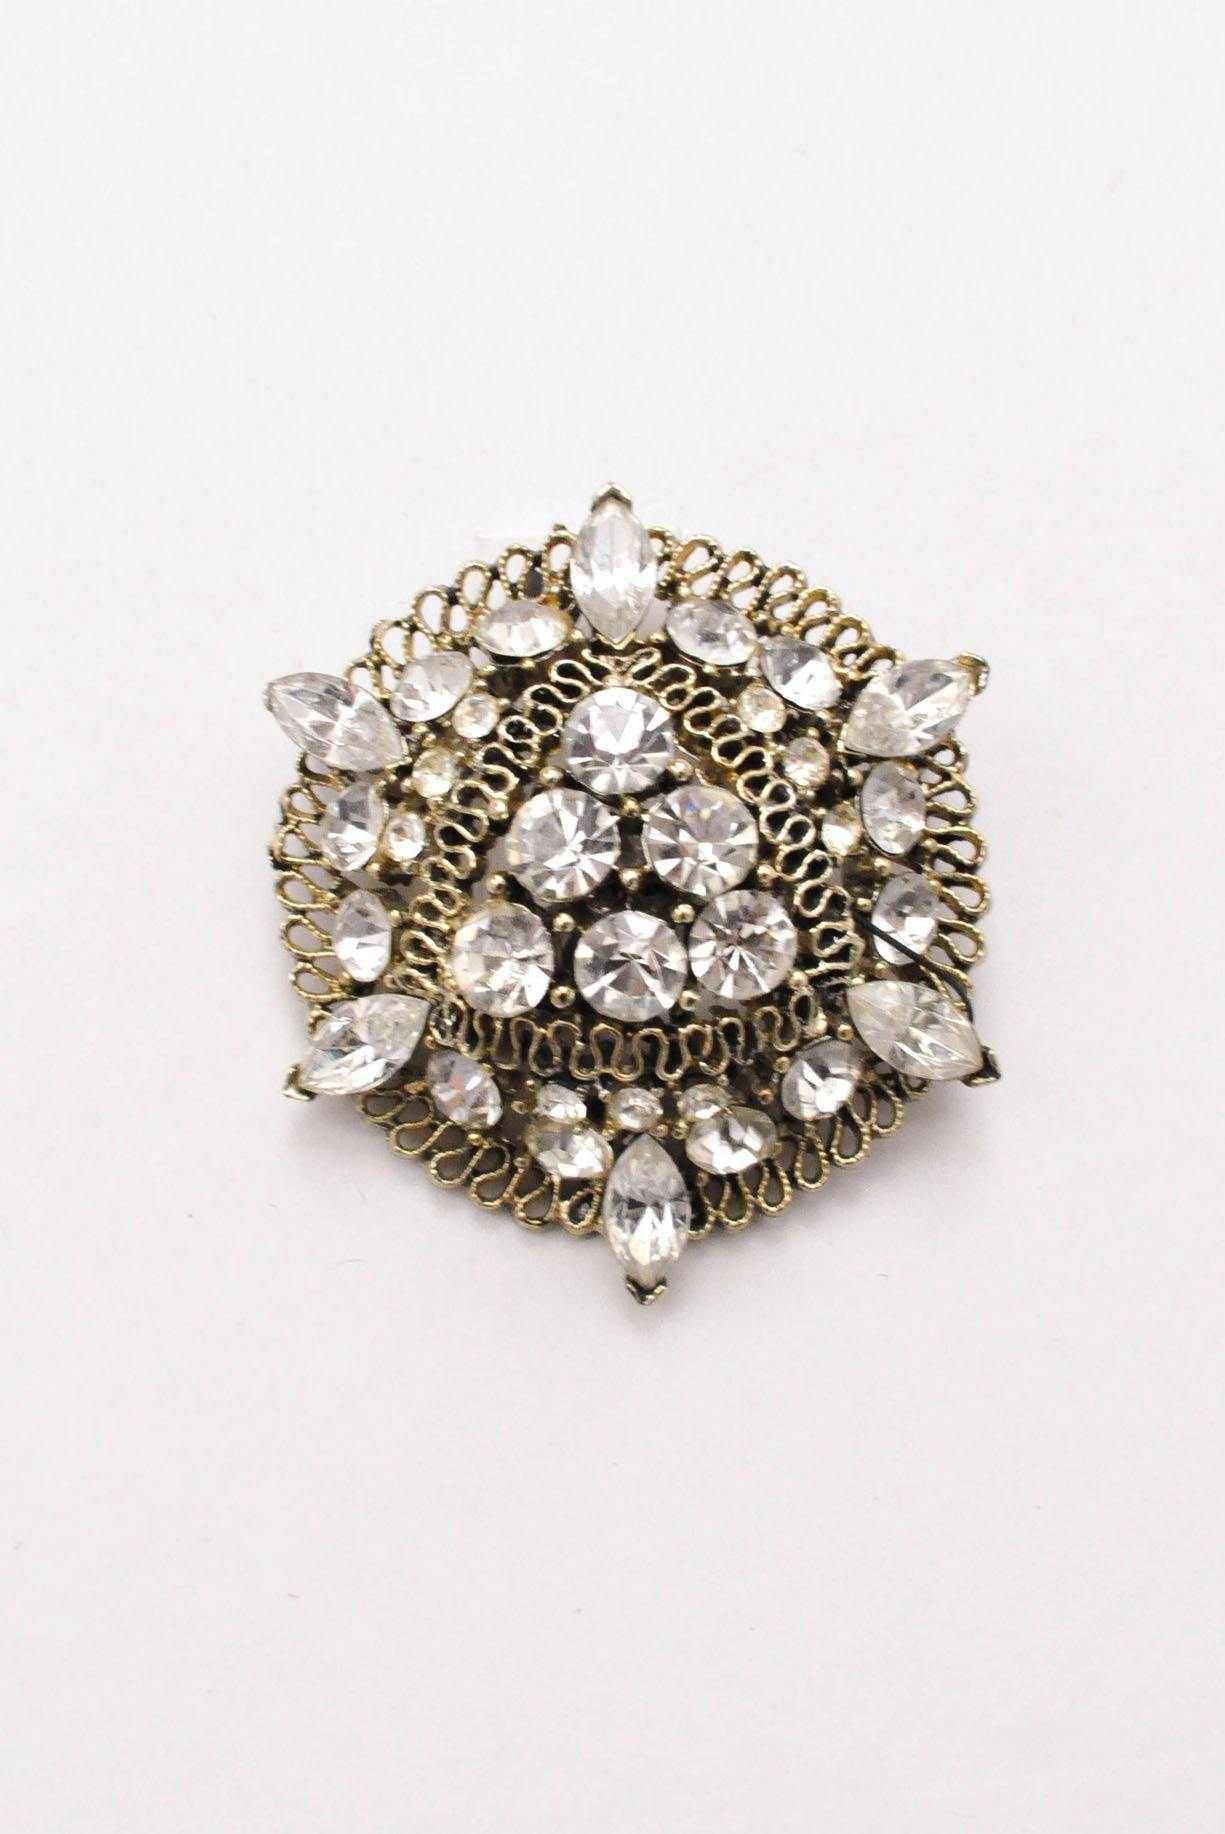 Rhinestone burst brooch from Sweet & Spark.